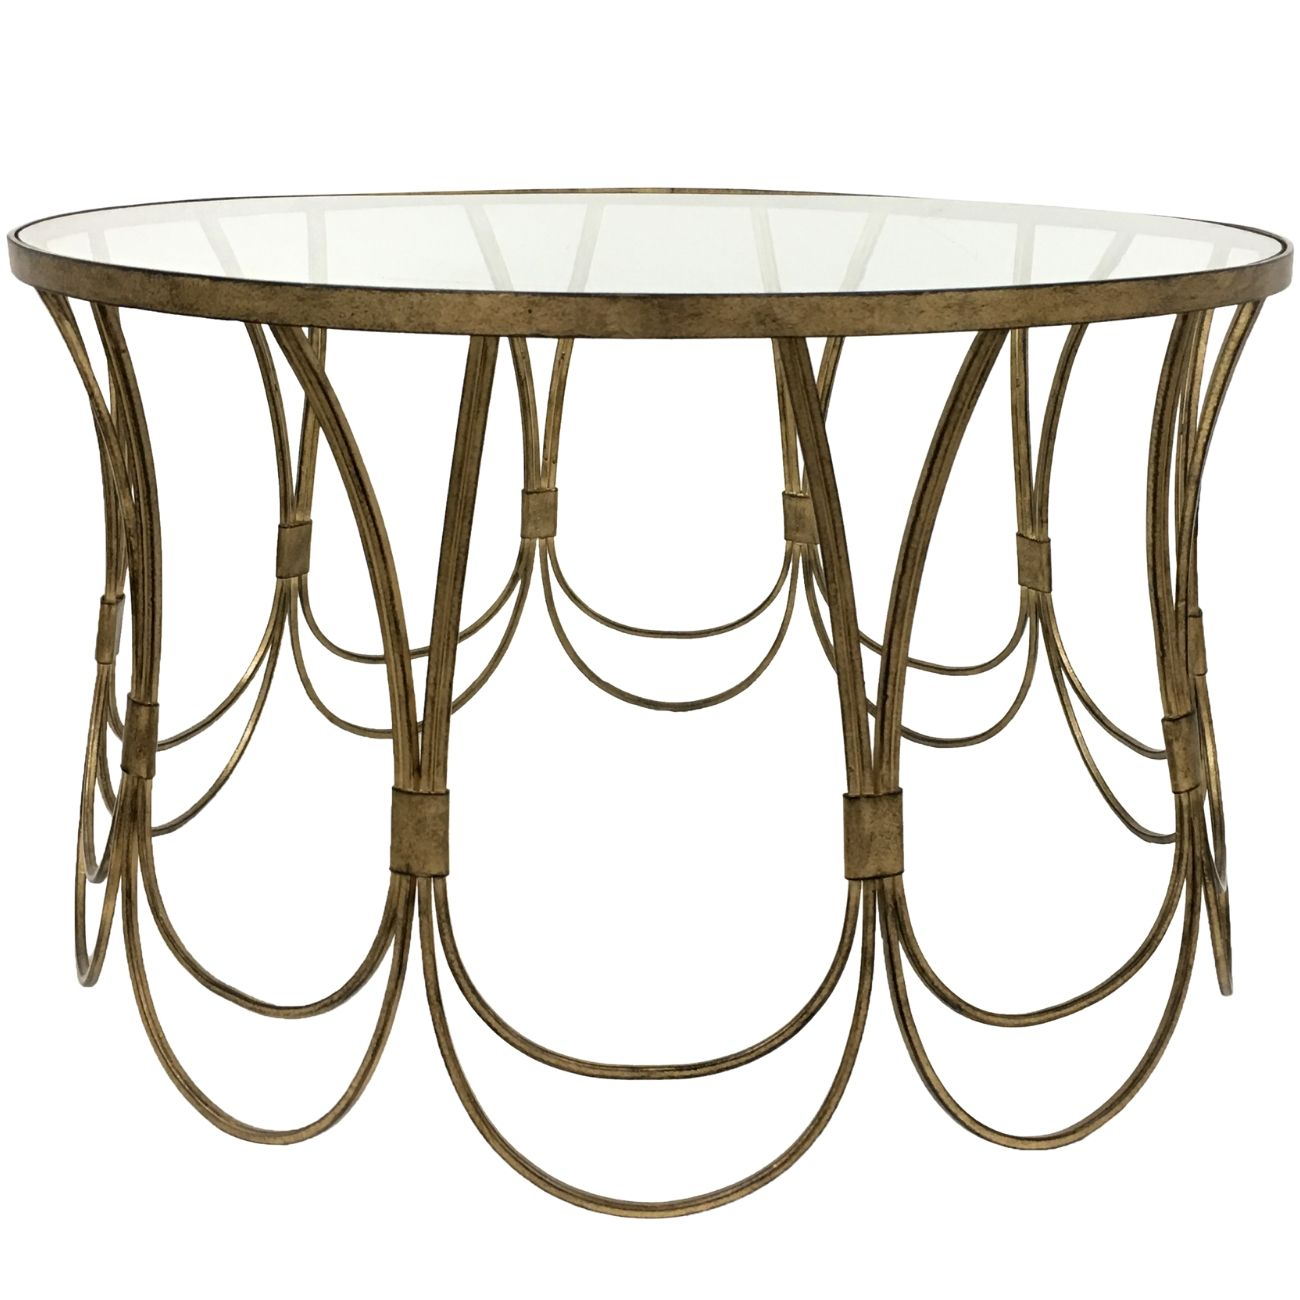 Deco Champagne Iron Coffee Table with Scallop Detail